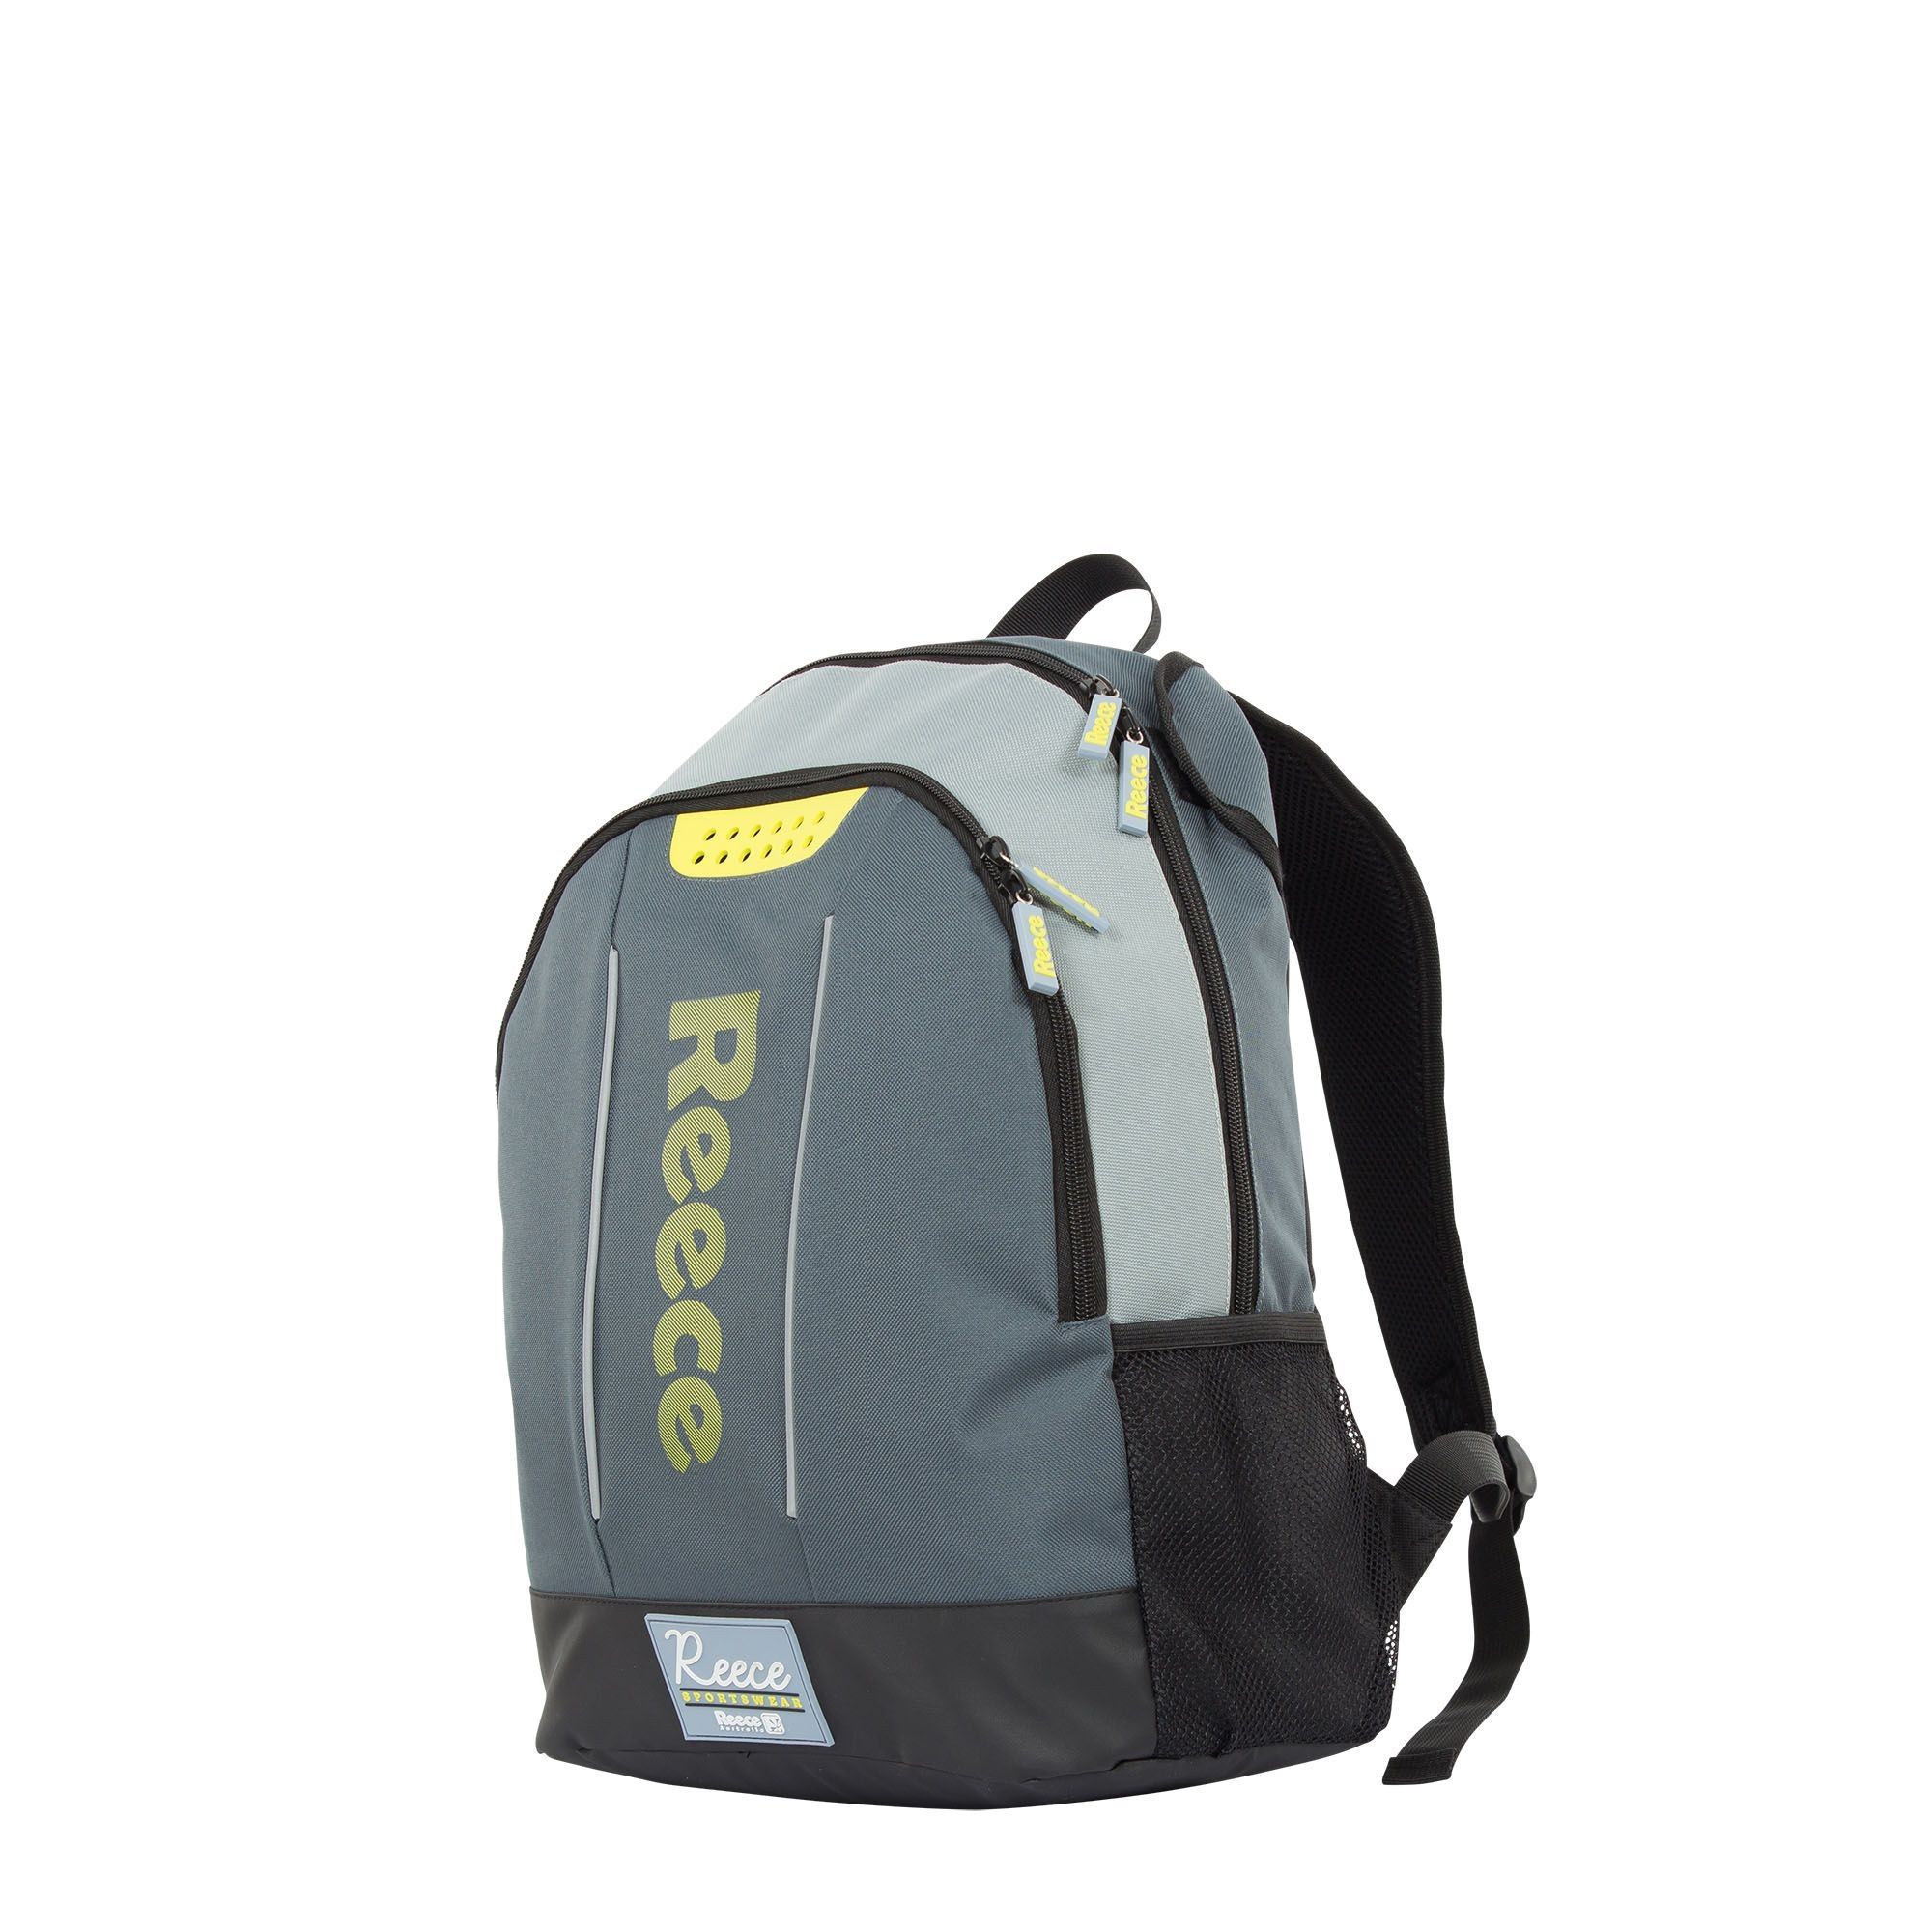 Evans hockey backpack grey